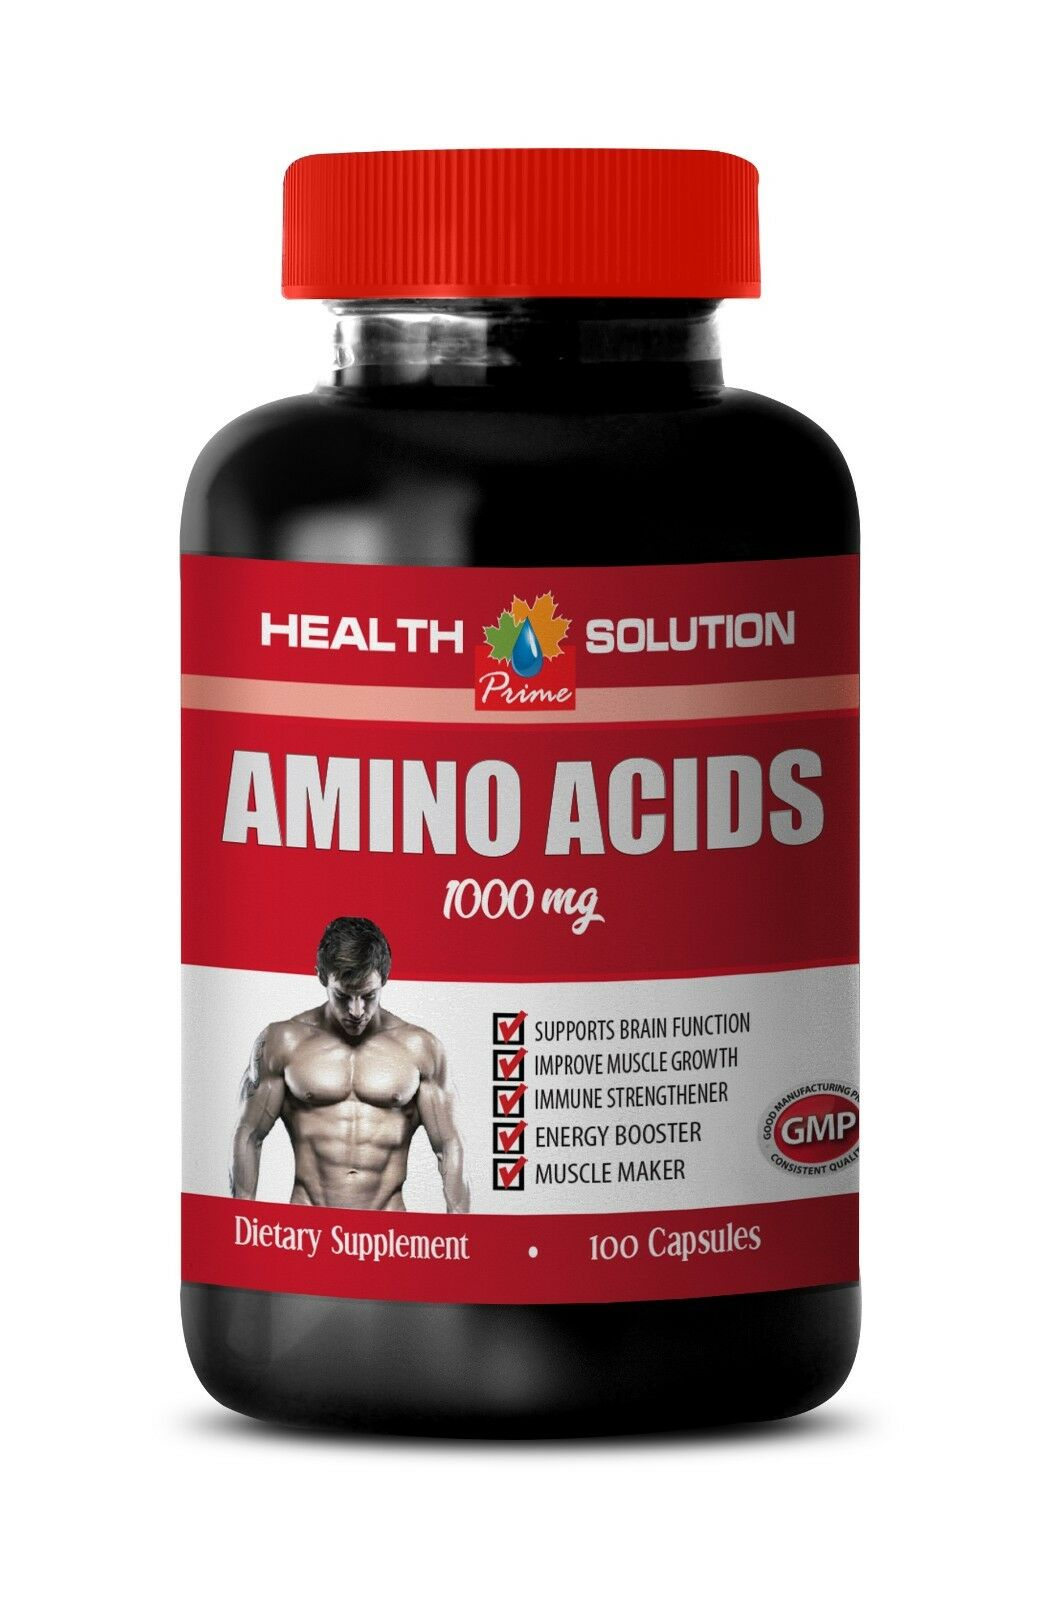 pre workout muscle growth - AMINO ACIDS 1000 mg - amino acid